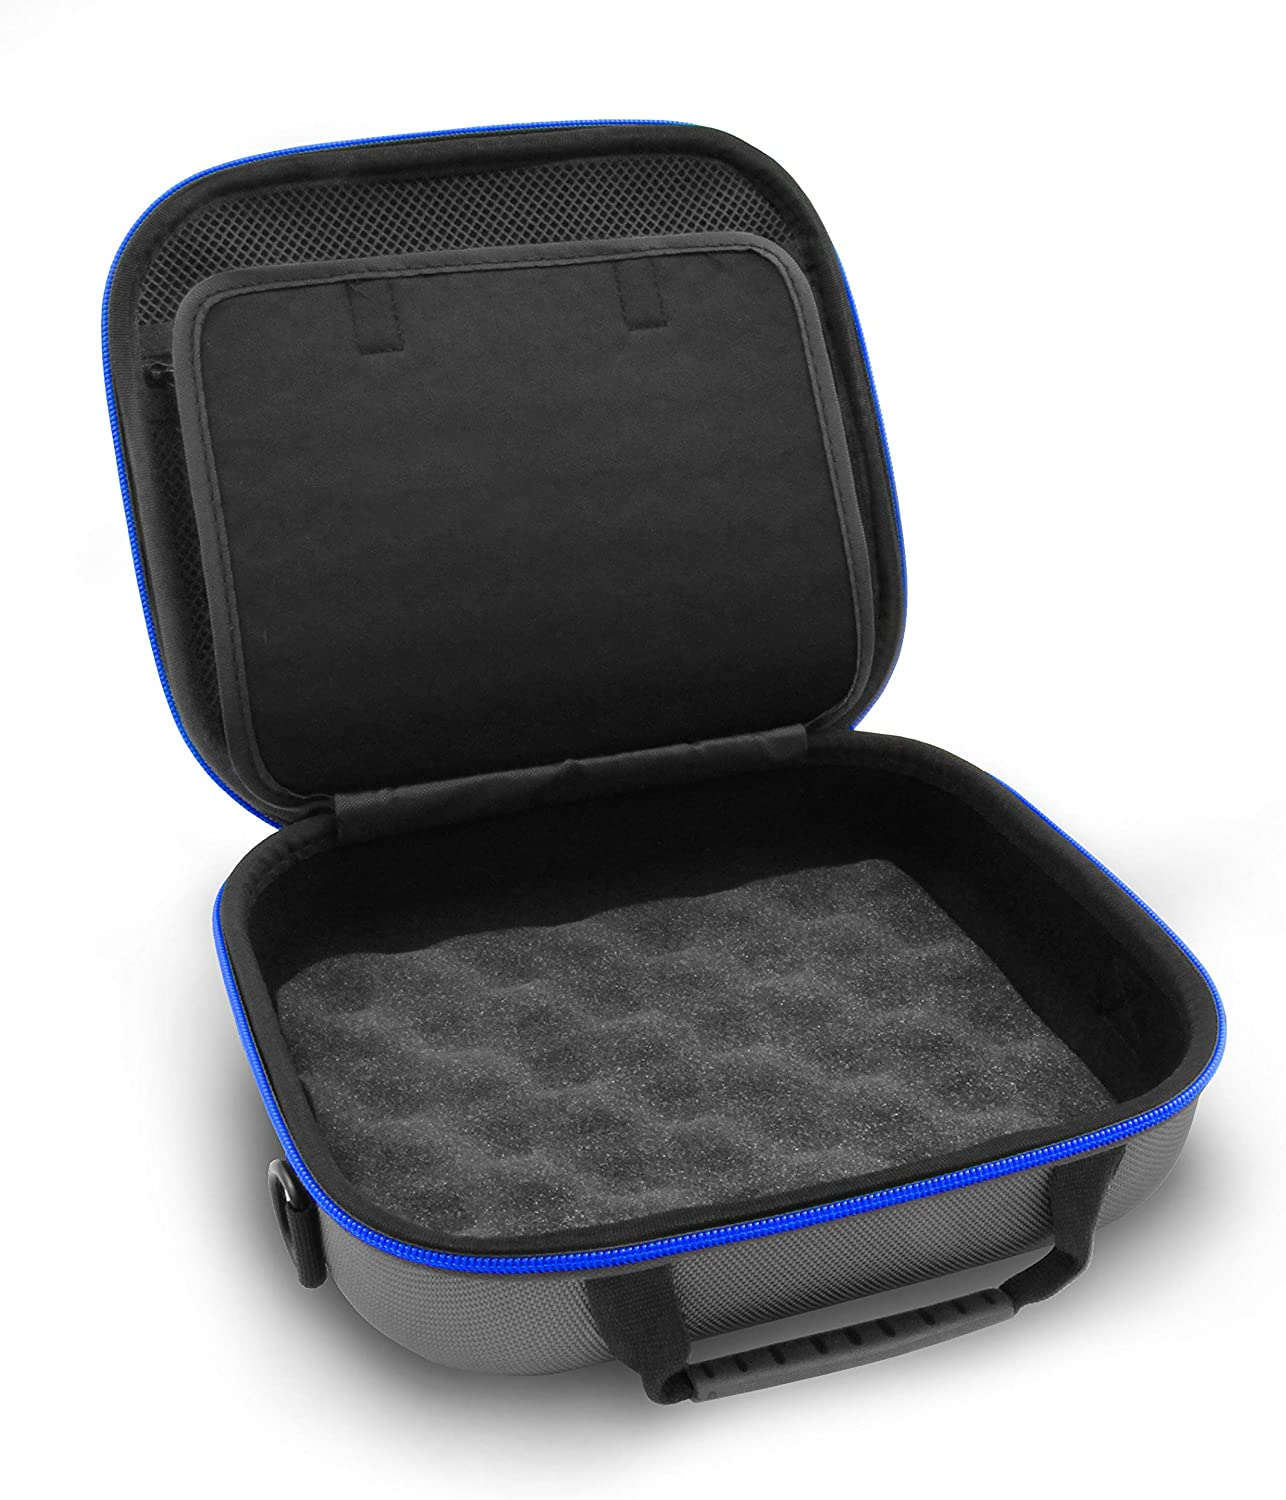 CASEMATIX Travel Carry Case Fits Square Terminal Reader Square Terminal Printer Paper and Accessories \u2013 Shoulder Strap Water-Resistant